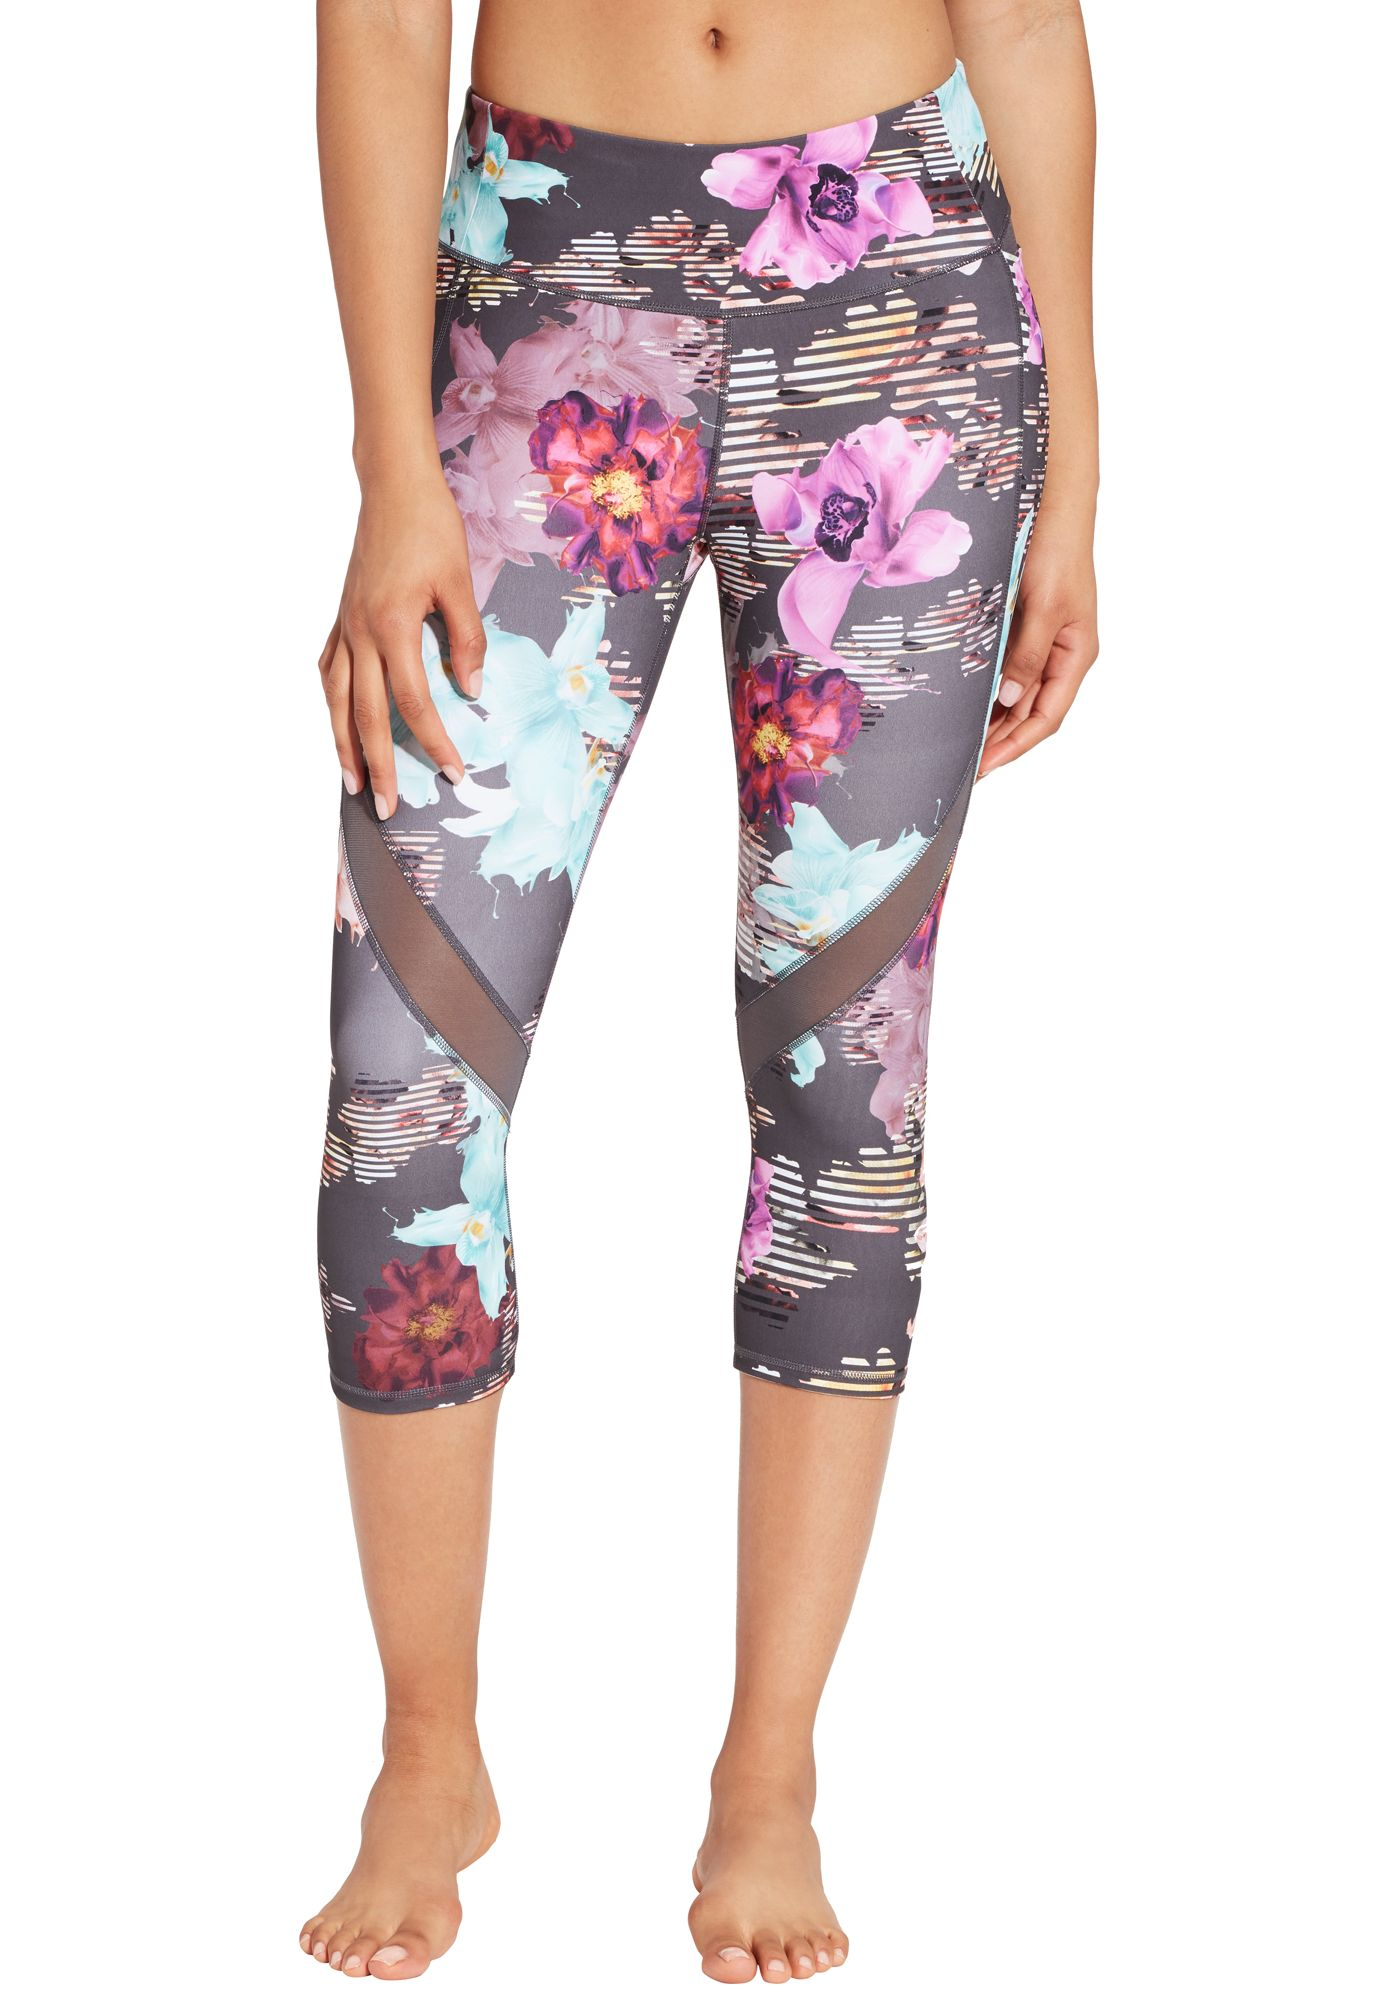 CALIA by Carrie Underwood Women's Printed Energize Capris